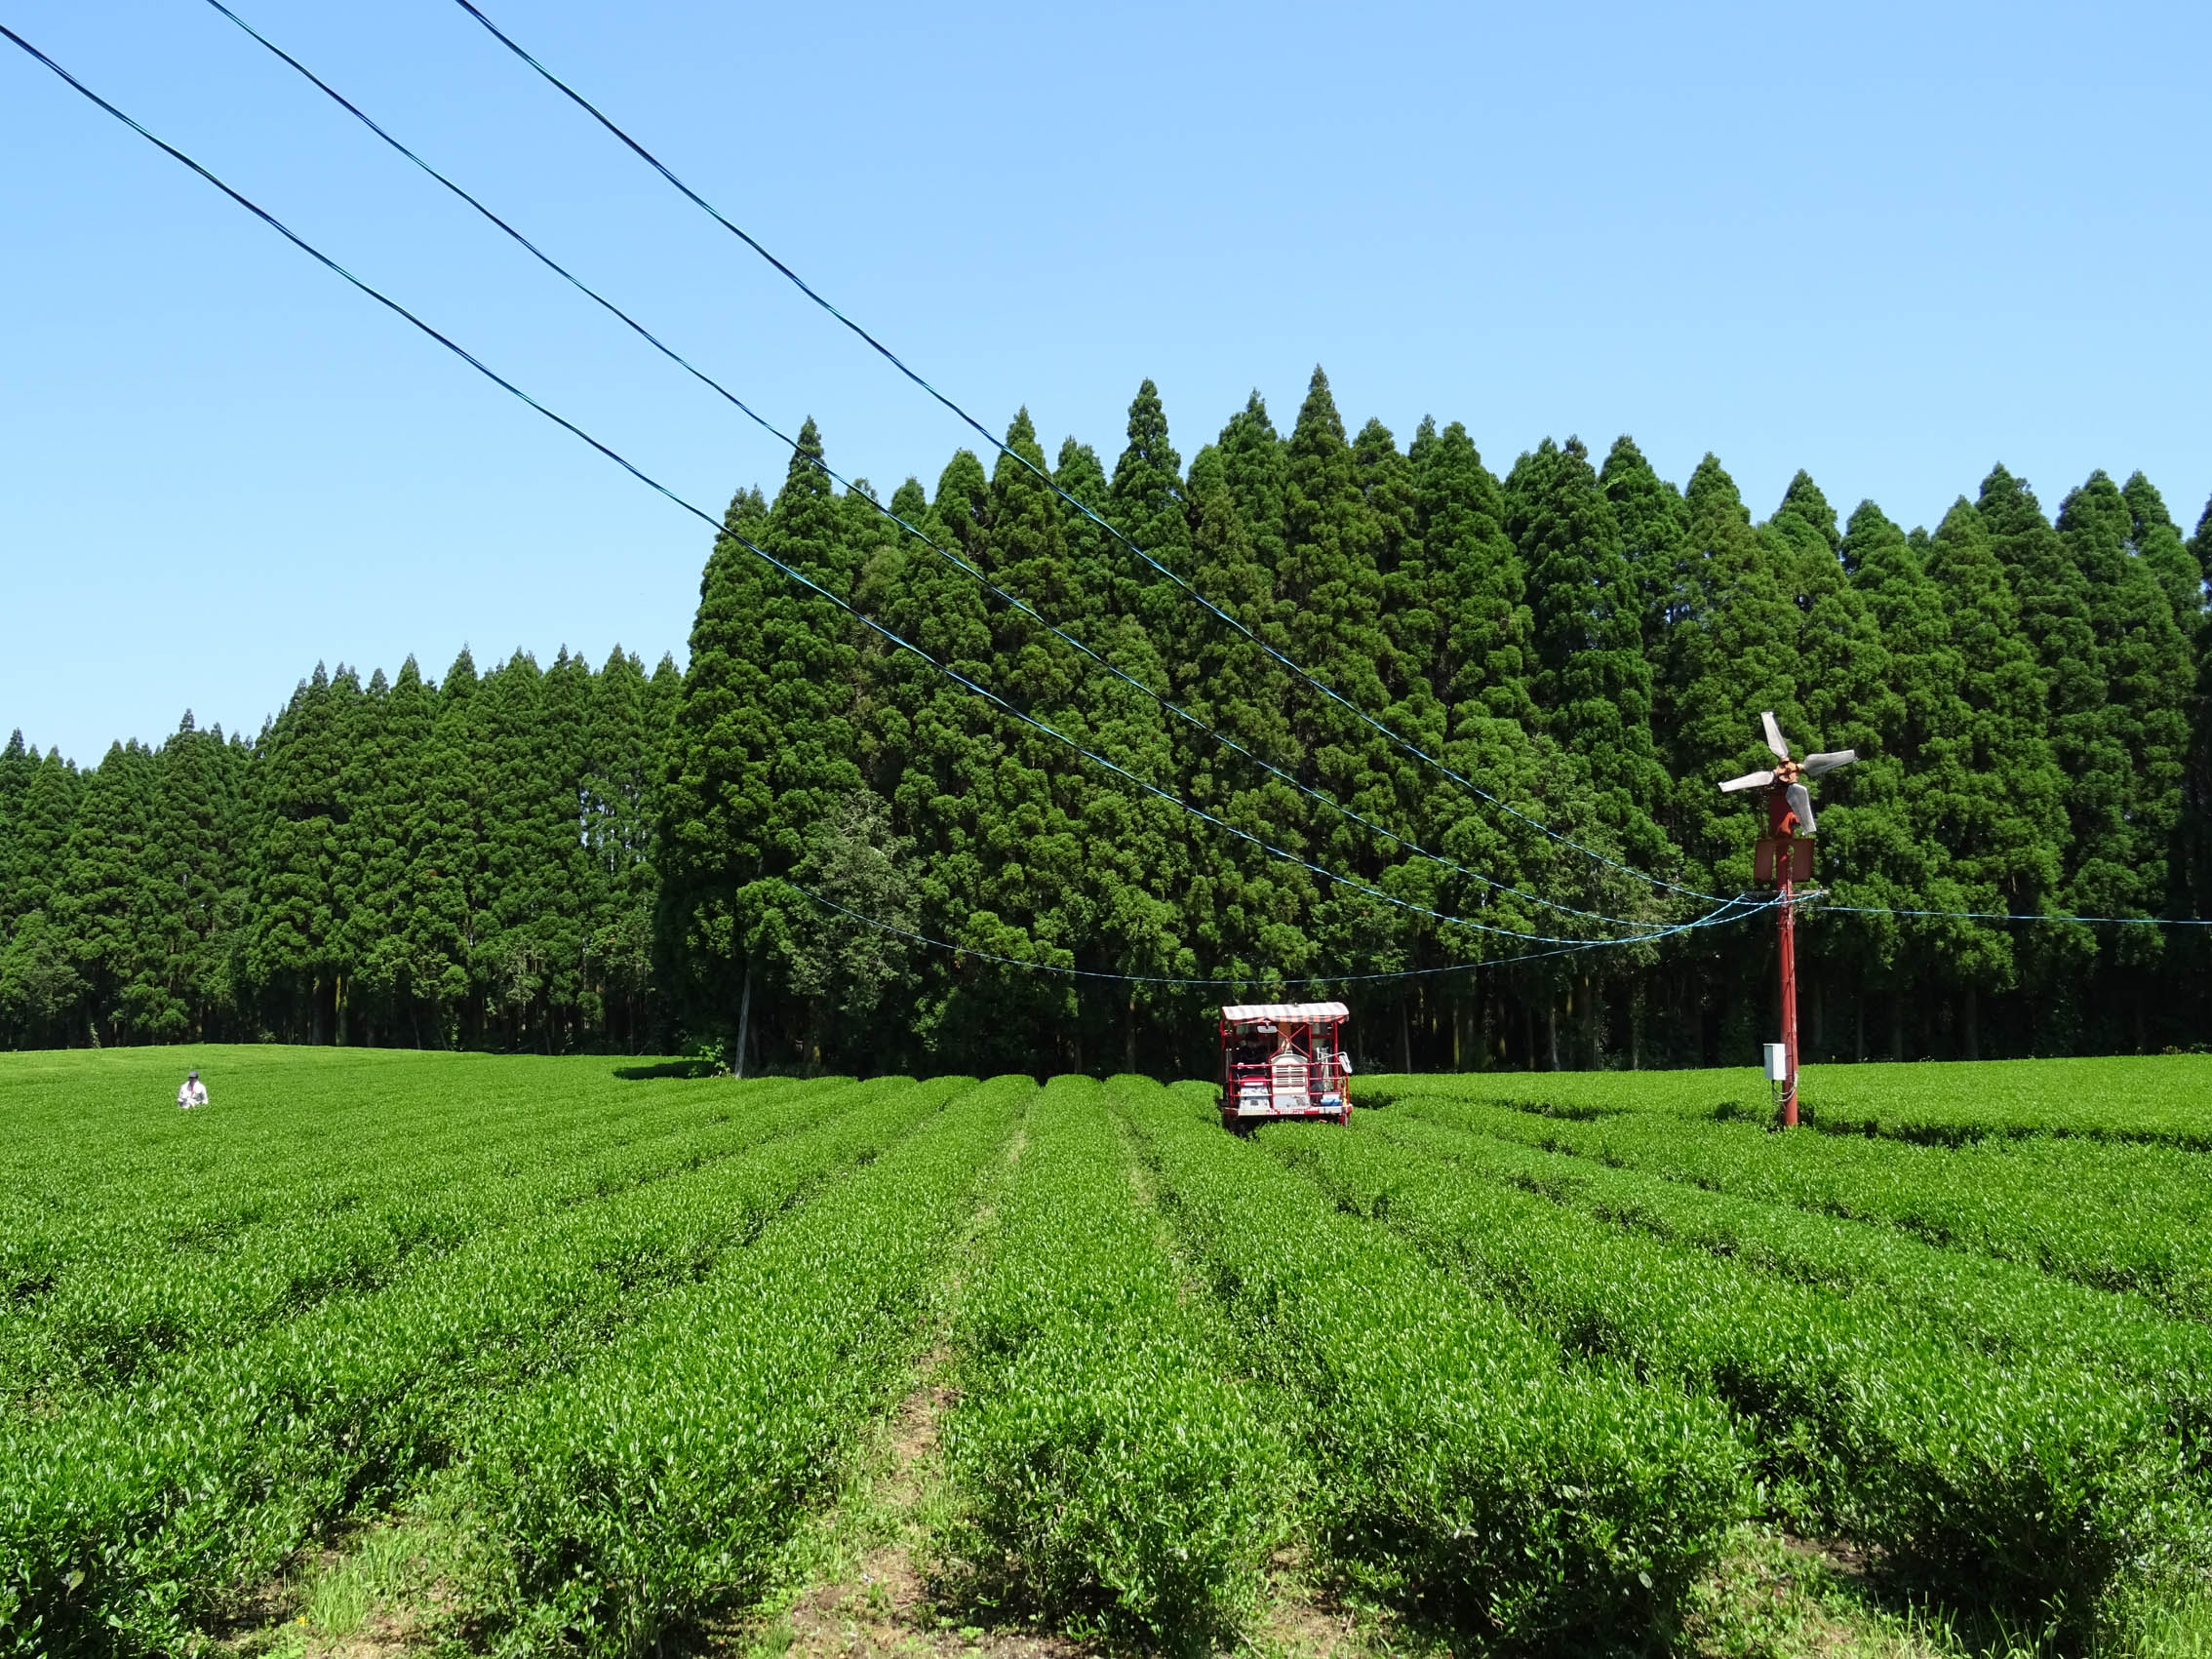 Young Asanoka tea bushes at Shutaro's Kirishima tea garden